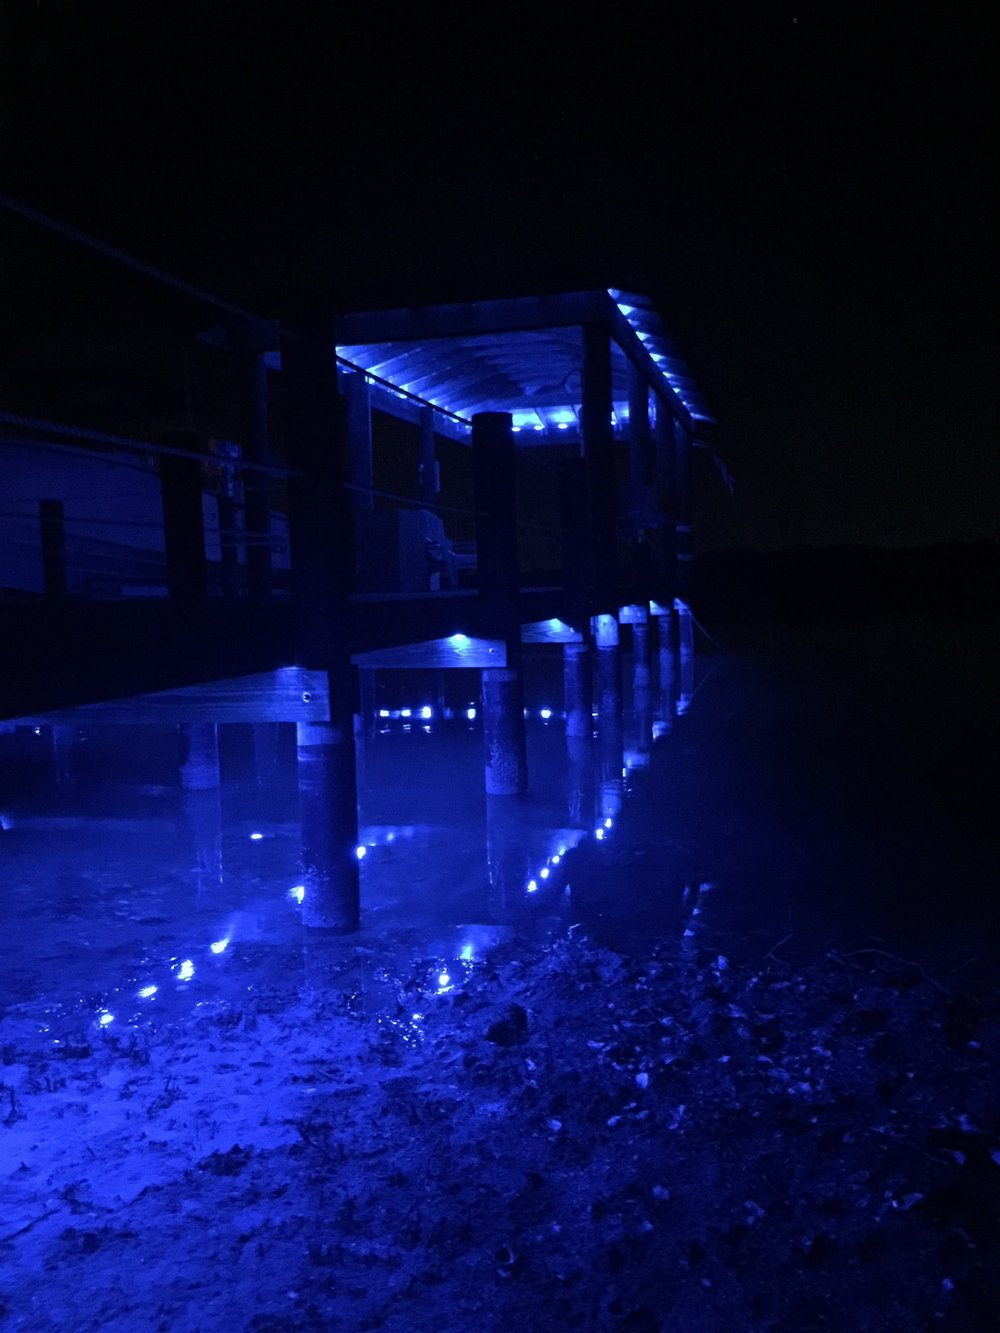 Lights made to highlight docks on water.